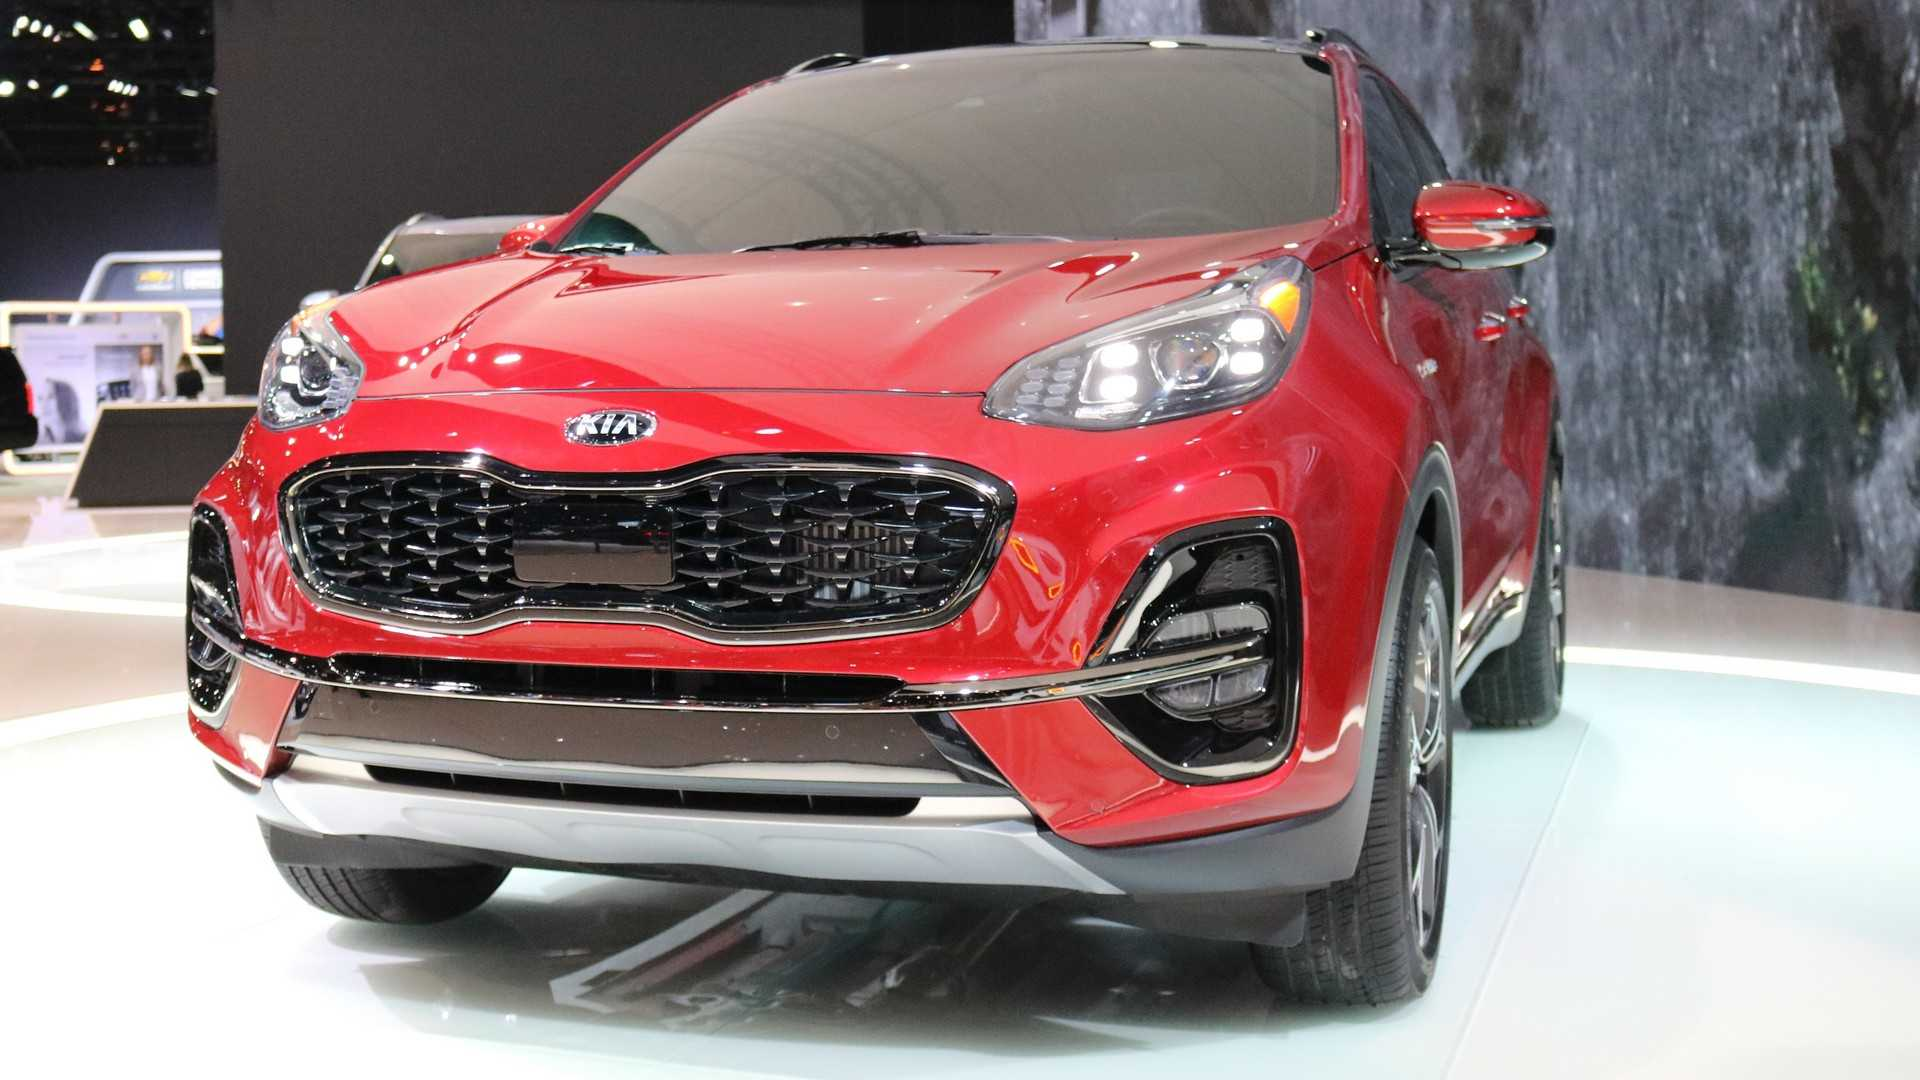 32 New 2020 Kia Sportage Performance and New Engine